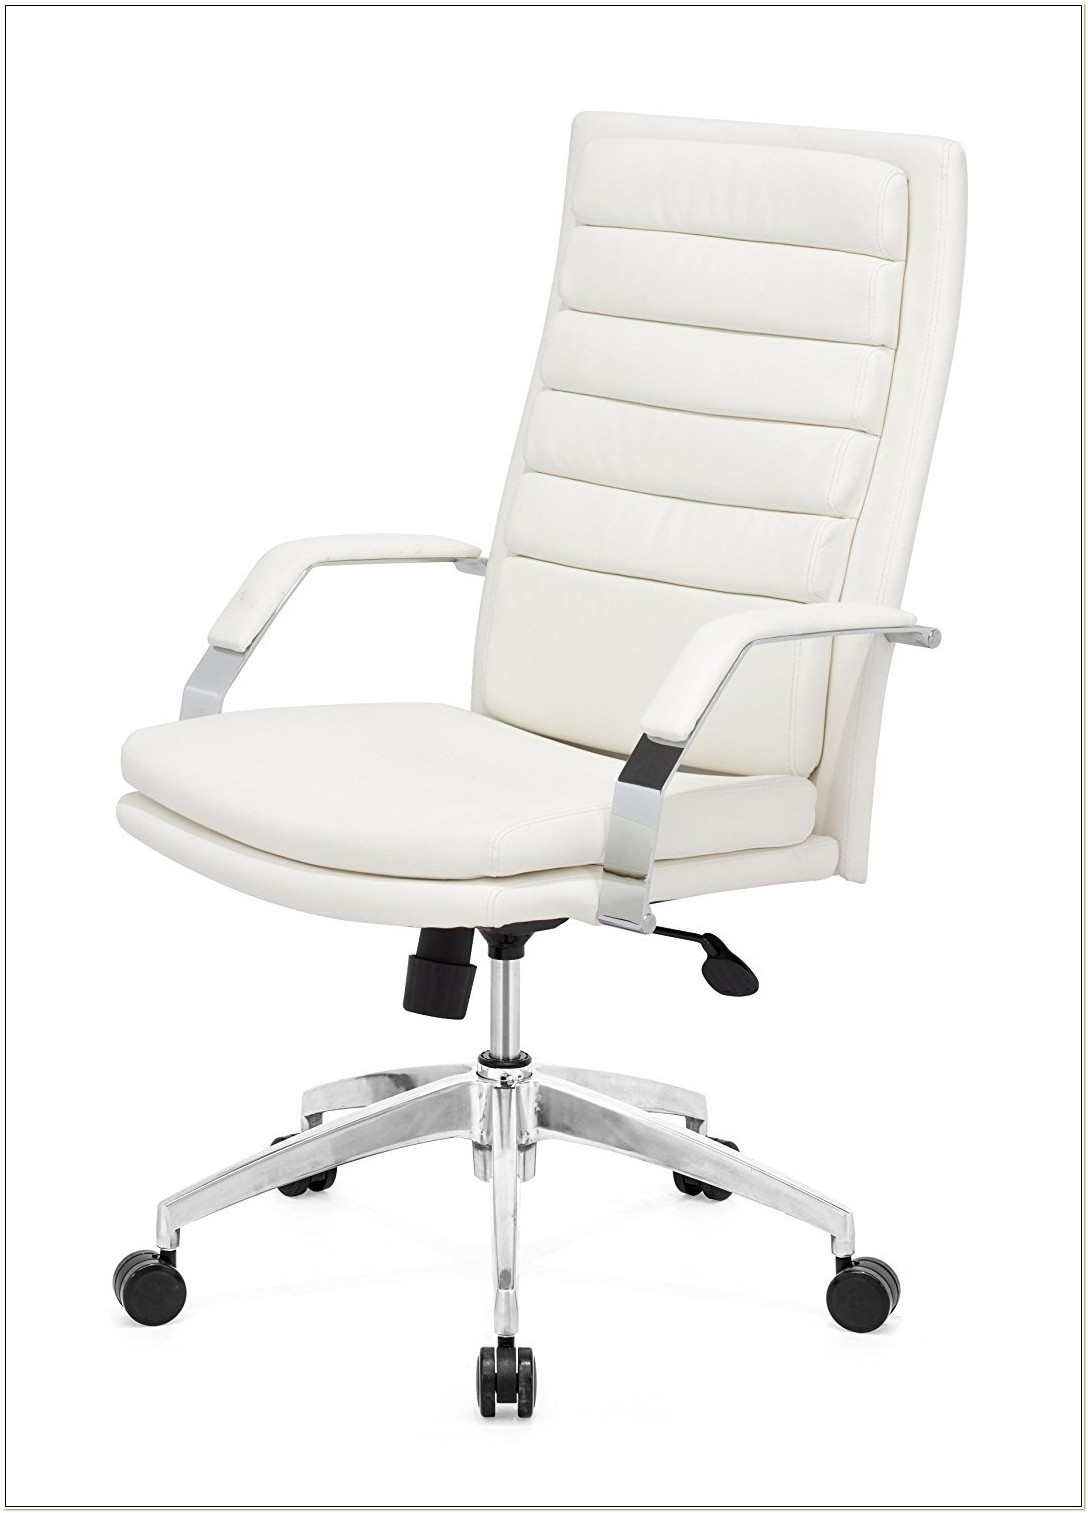 Zuo Director Office Chair White